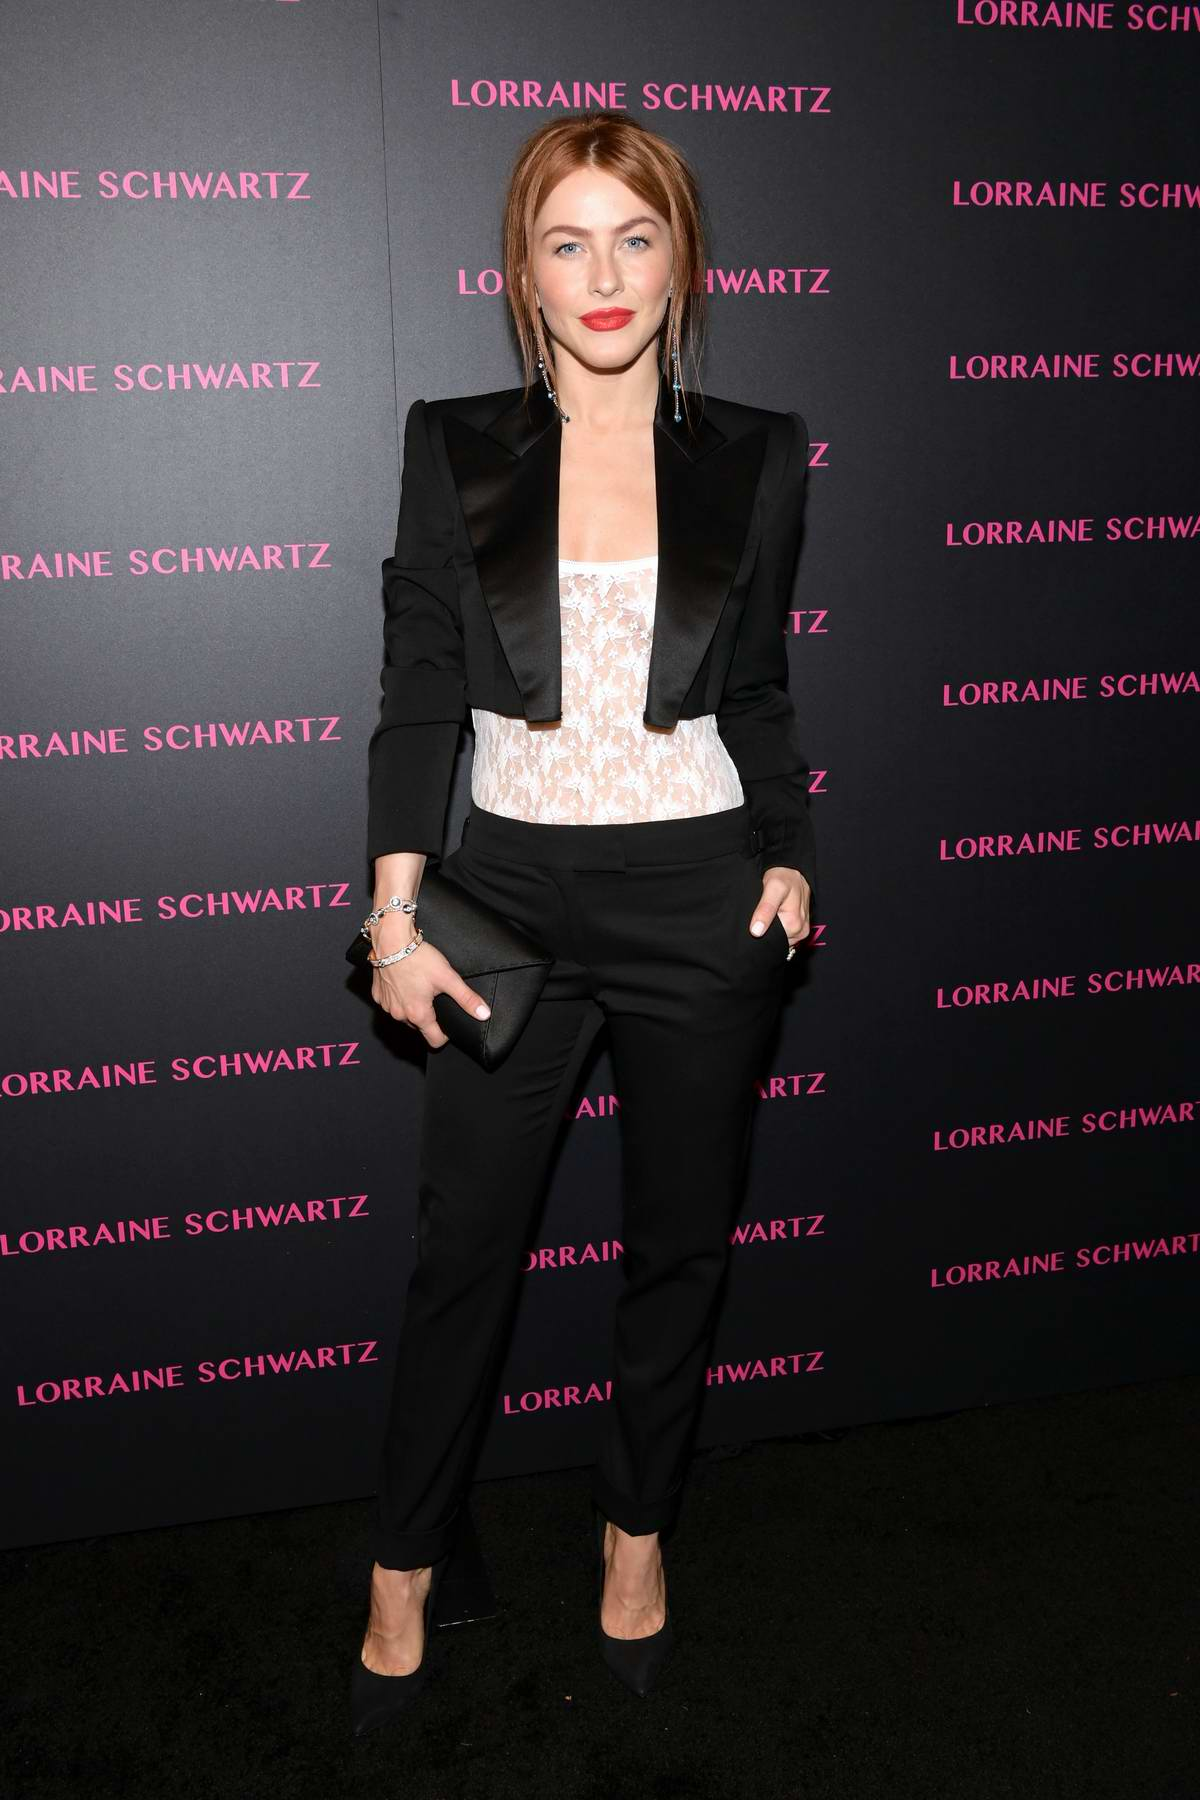 Julianne Hough attends Lorraine Schwartz Eye Bangles Collection launch at Delilah in West Hollywood, Los Angeles